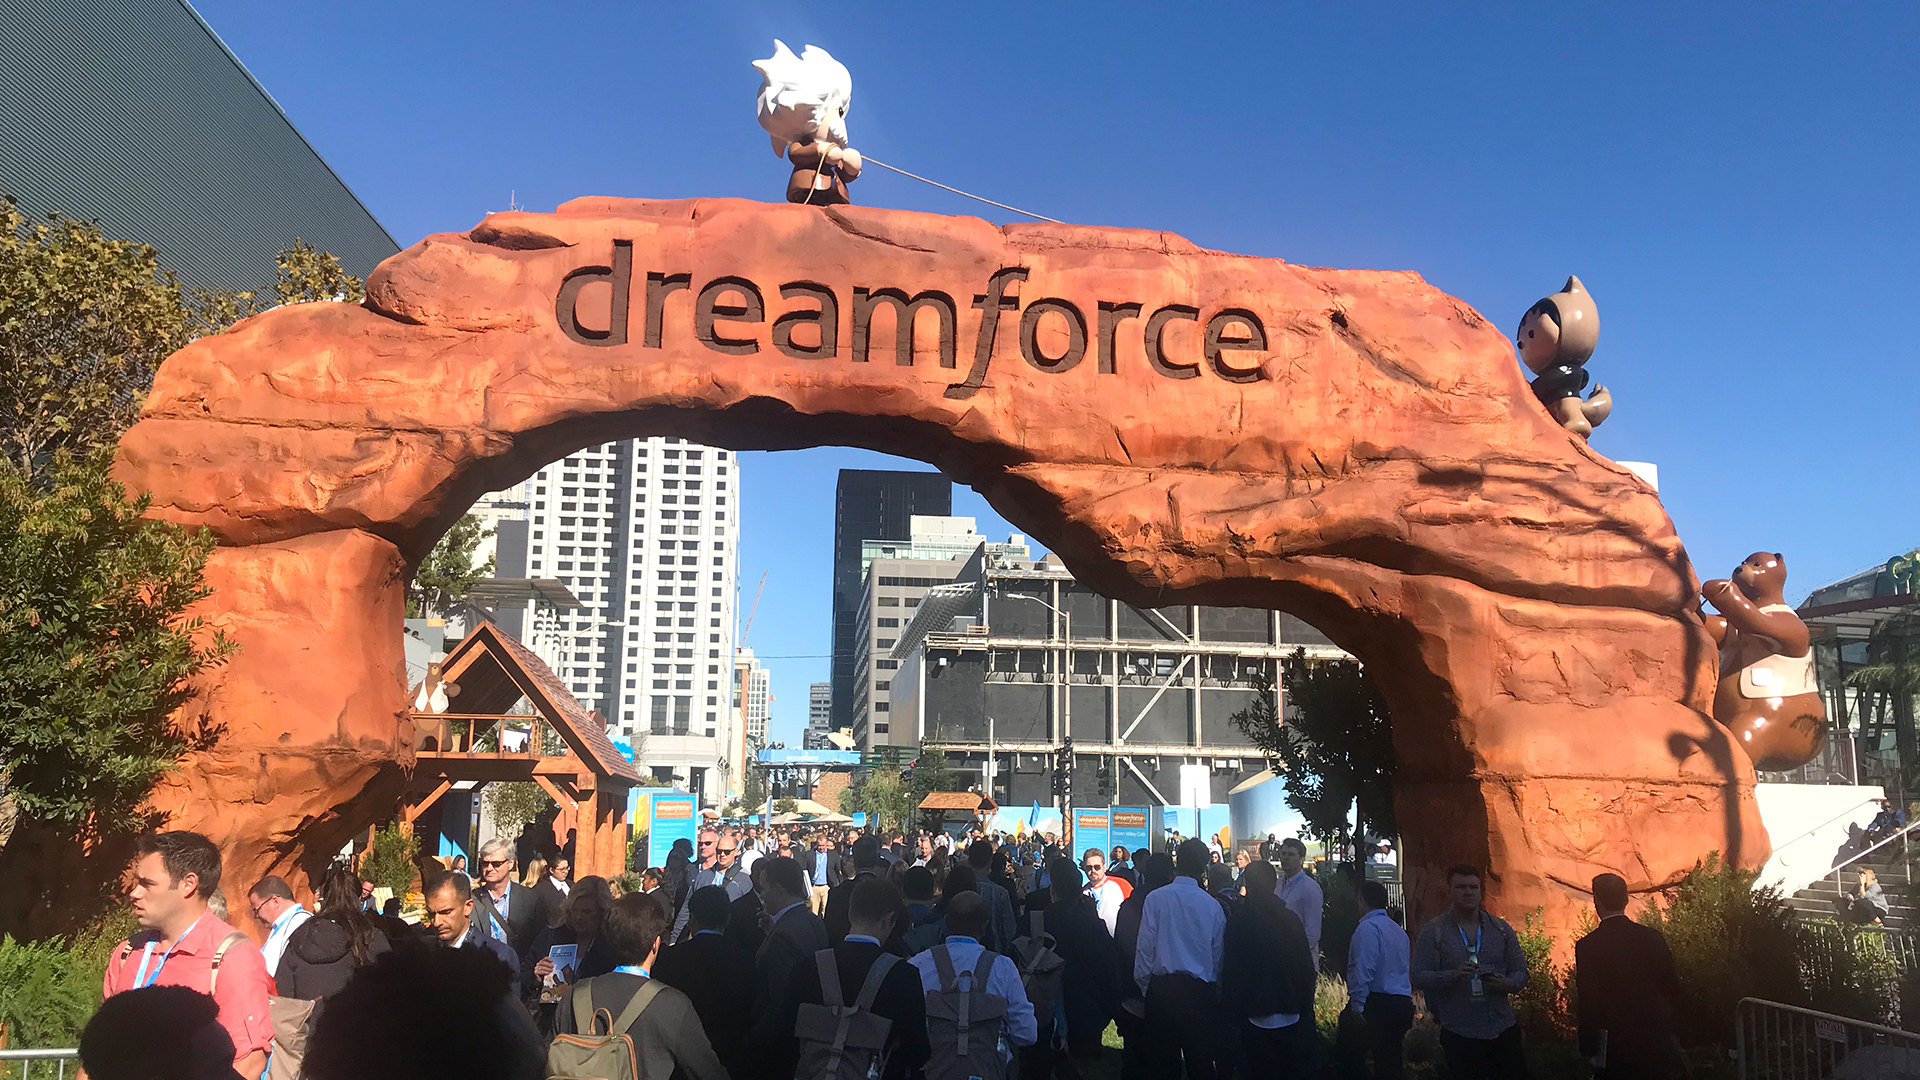 Dreamforce archway